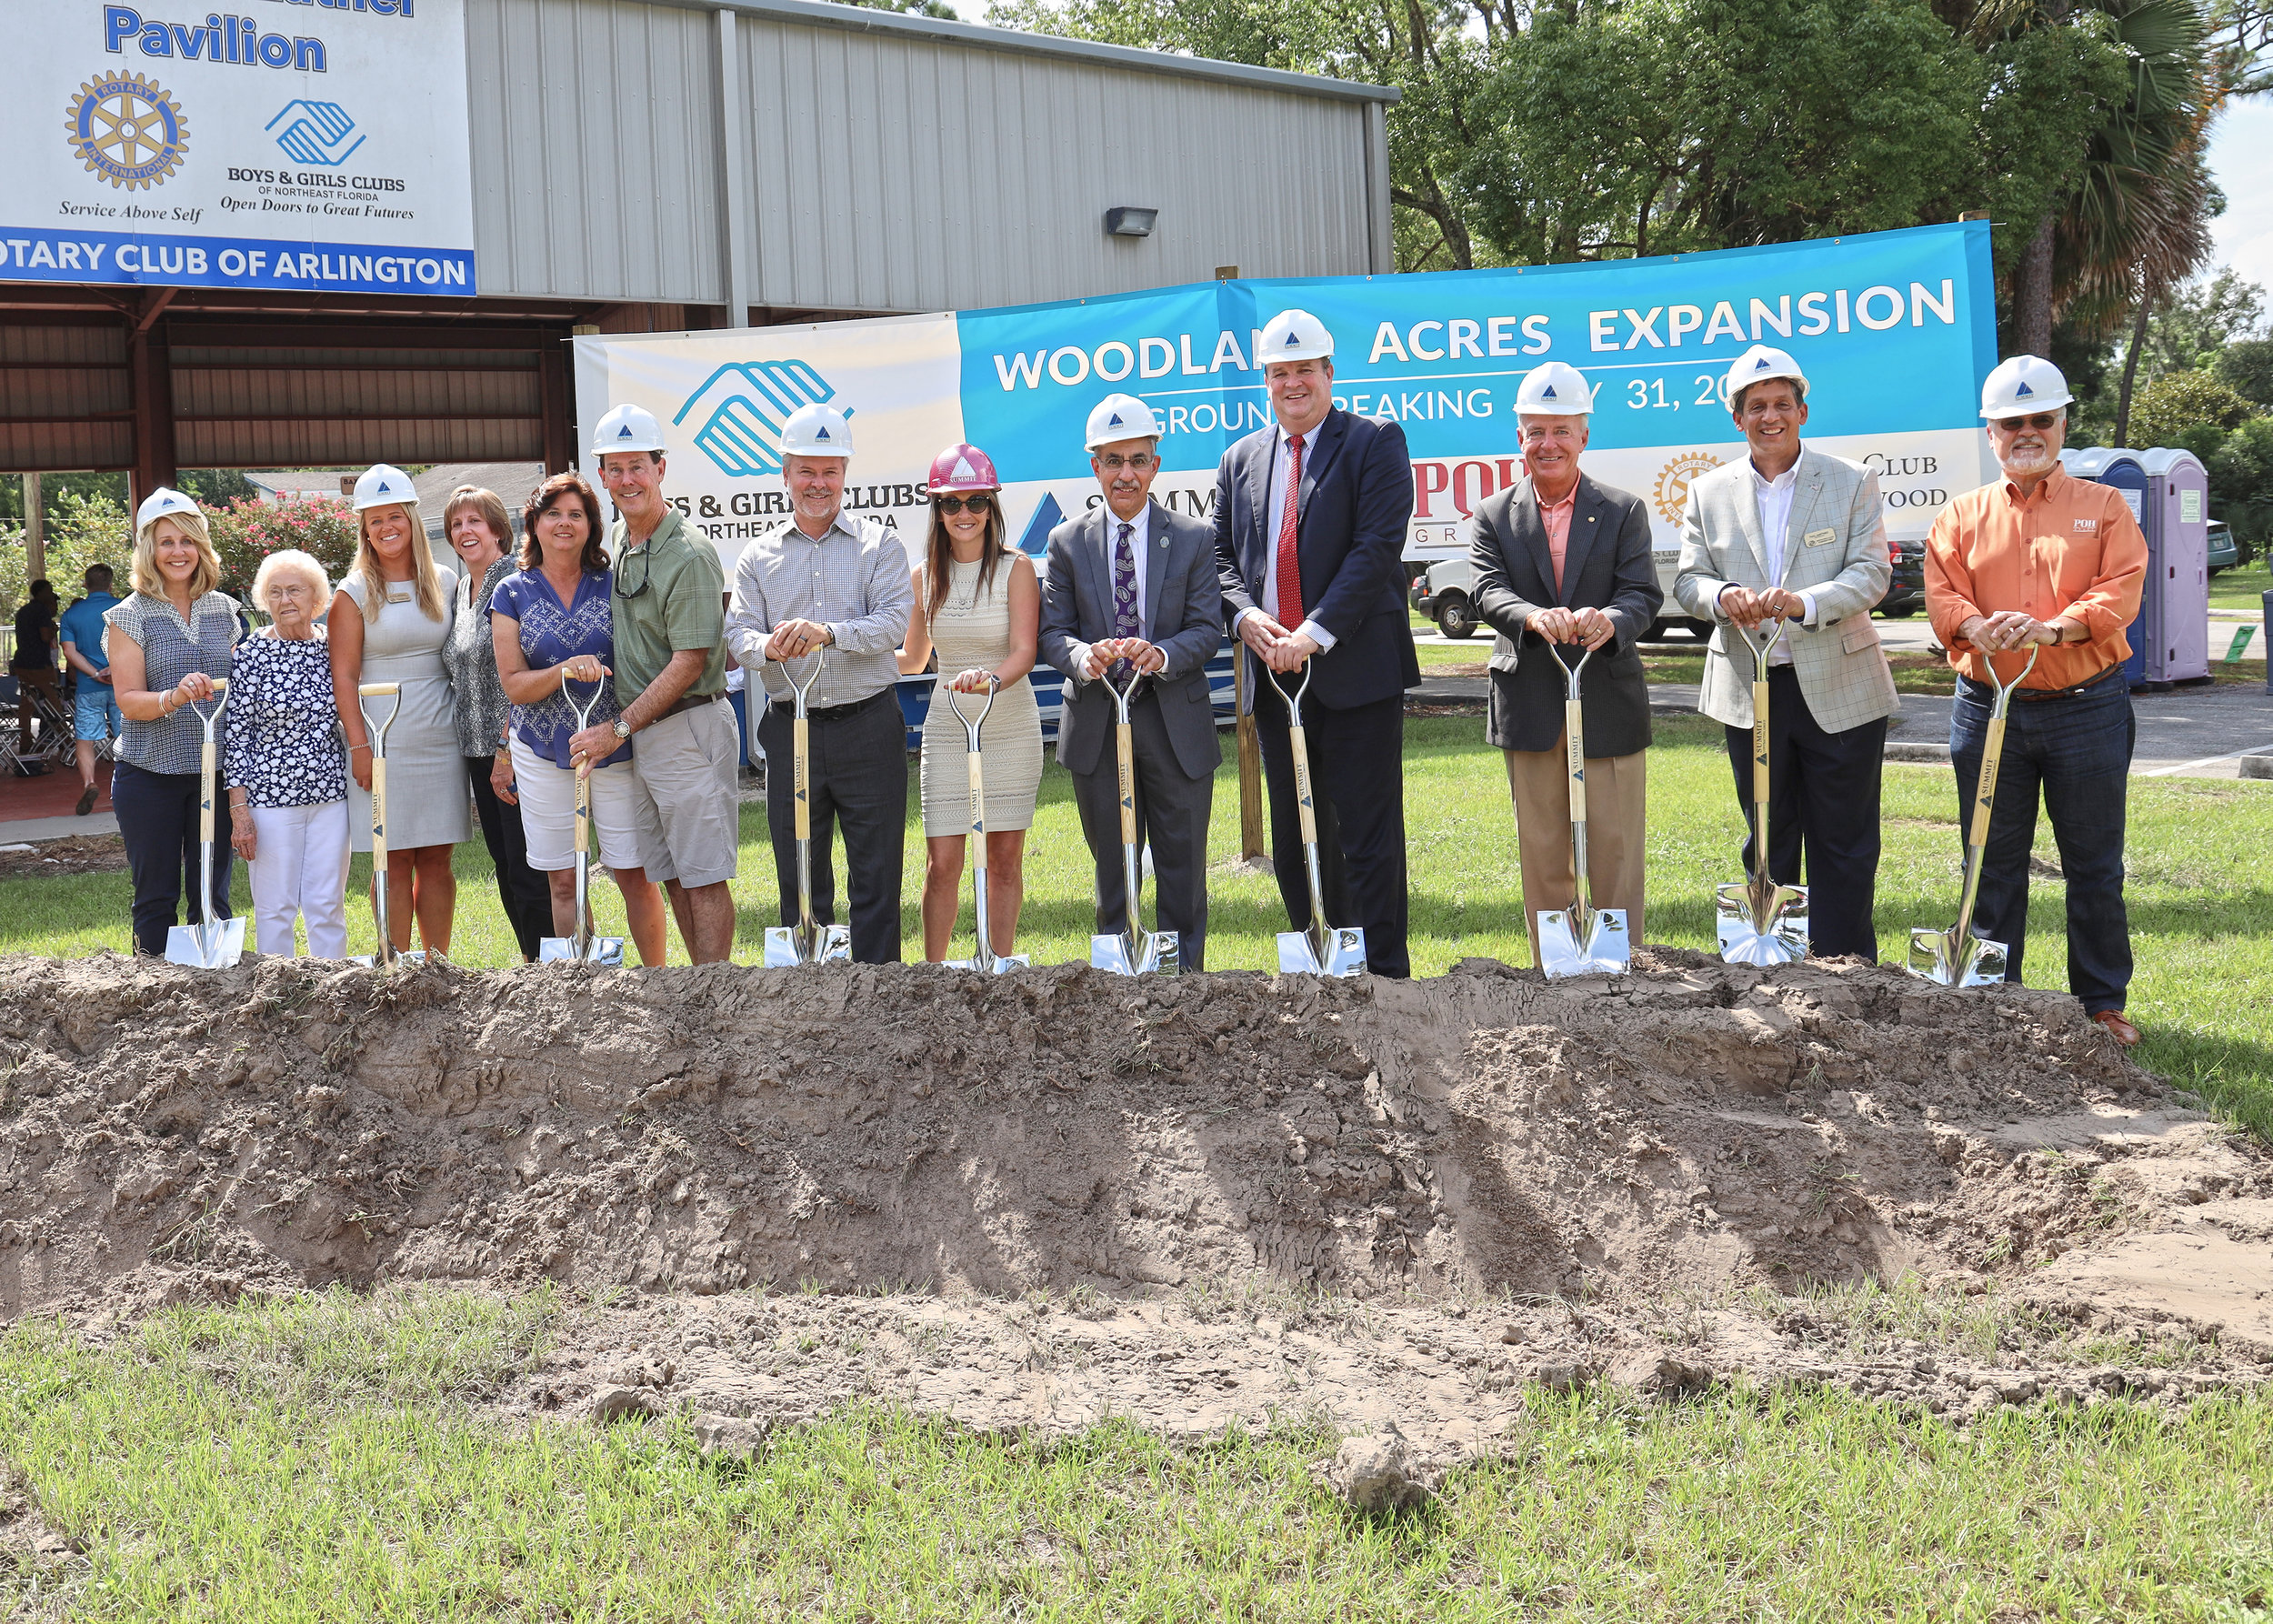 At the groundbreaking ceremony: Marc and Nicole Padgett along with Community and Industry Partners that made this Boys and Girls Clubs project possible.